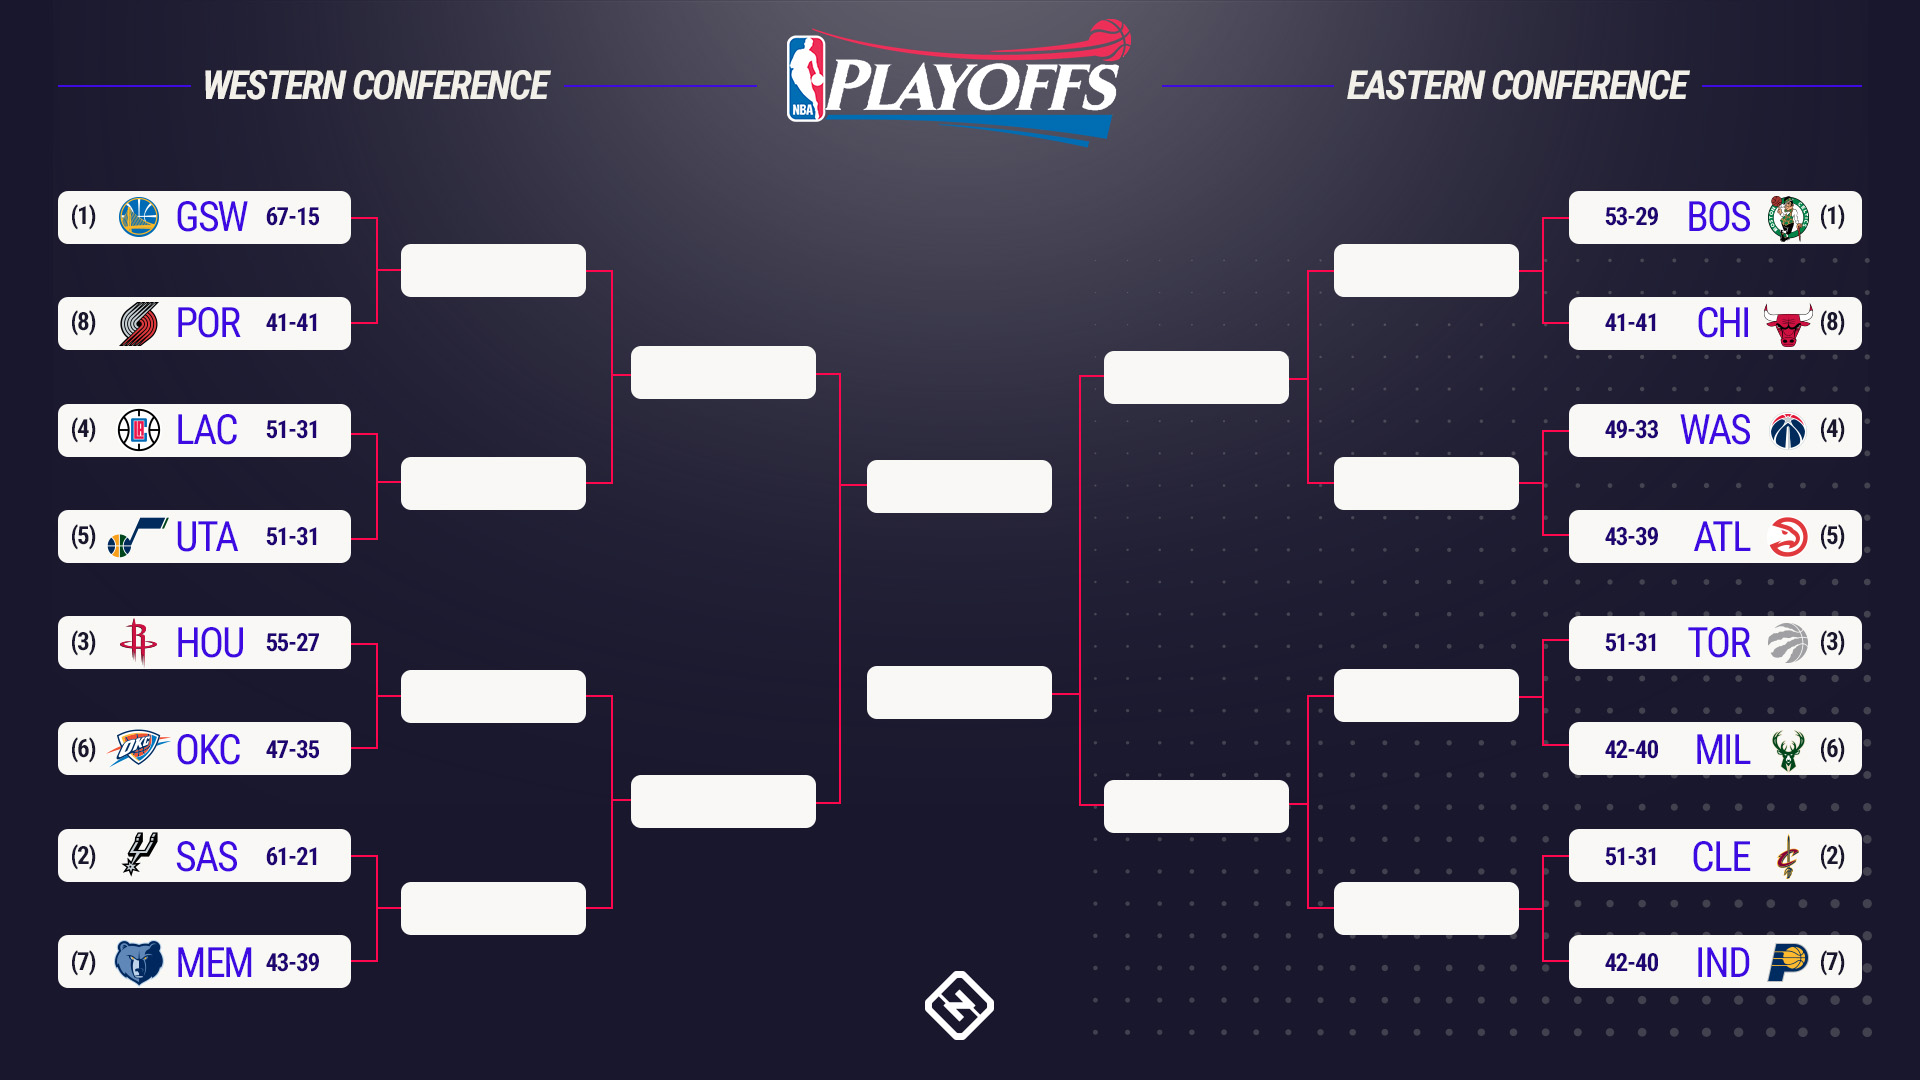 Nba playoff dates in Perth